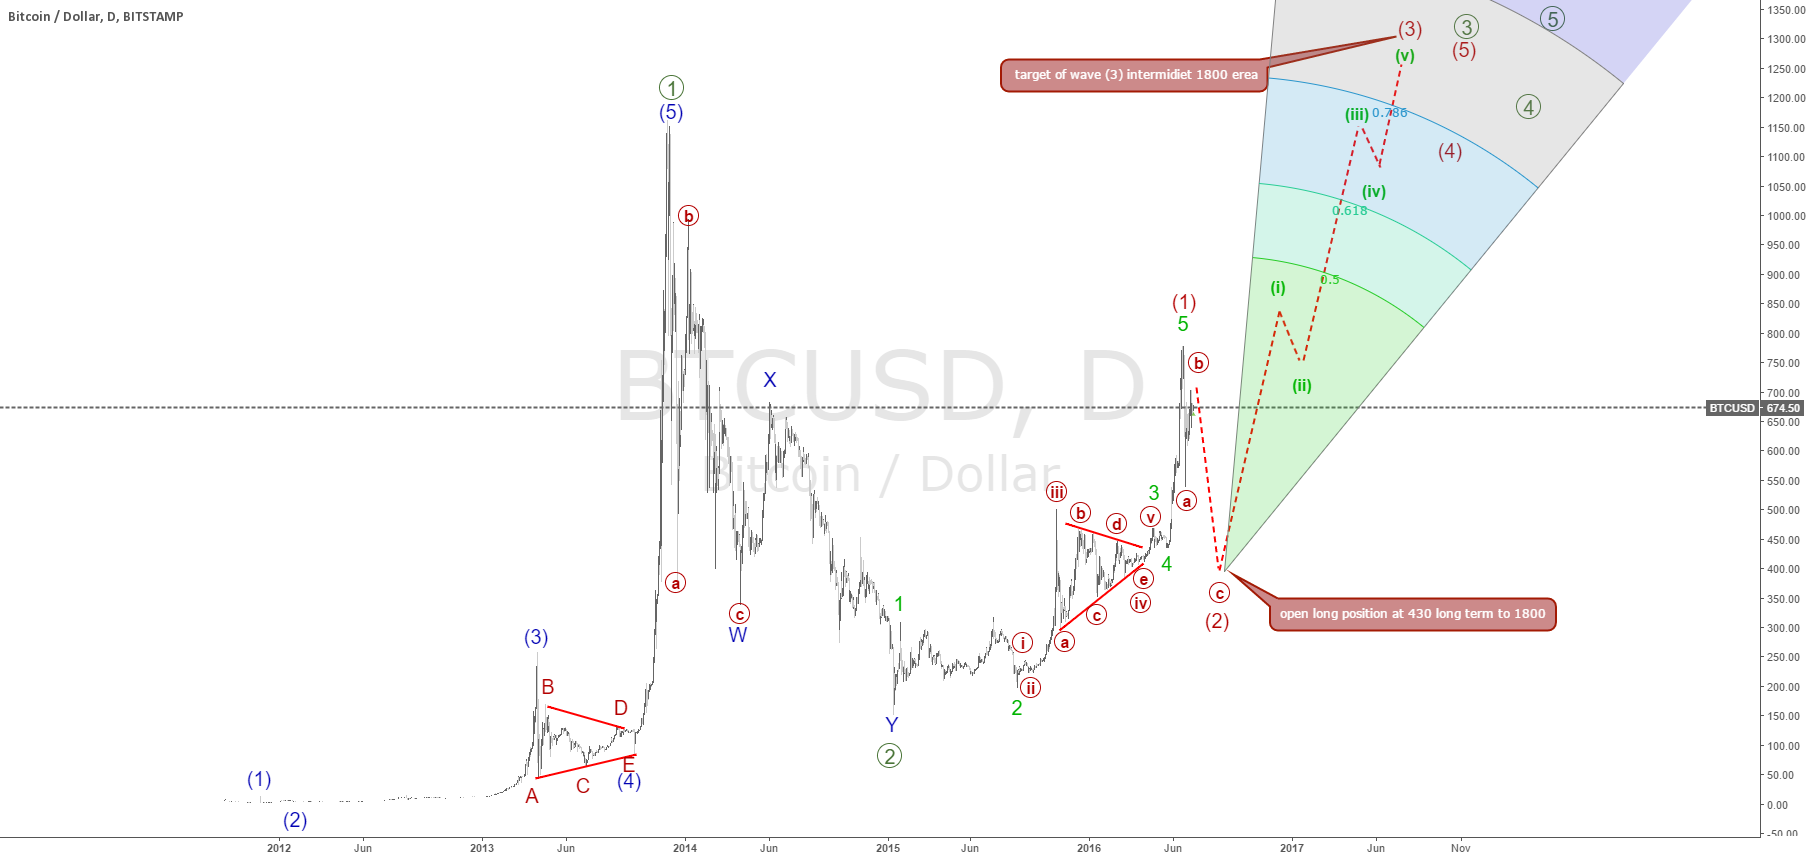 btcusd forecast from430 target of wave (3) intermidiet 1800 erea